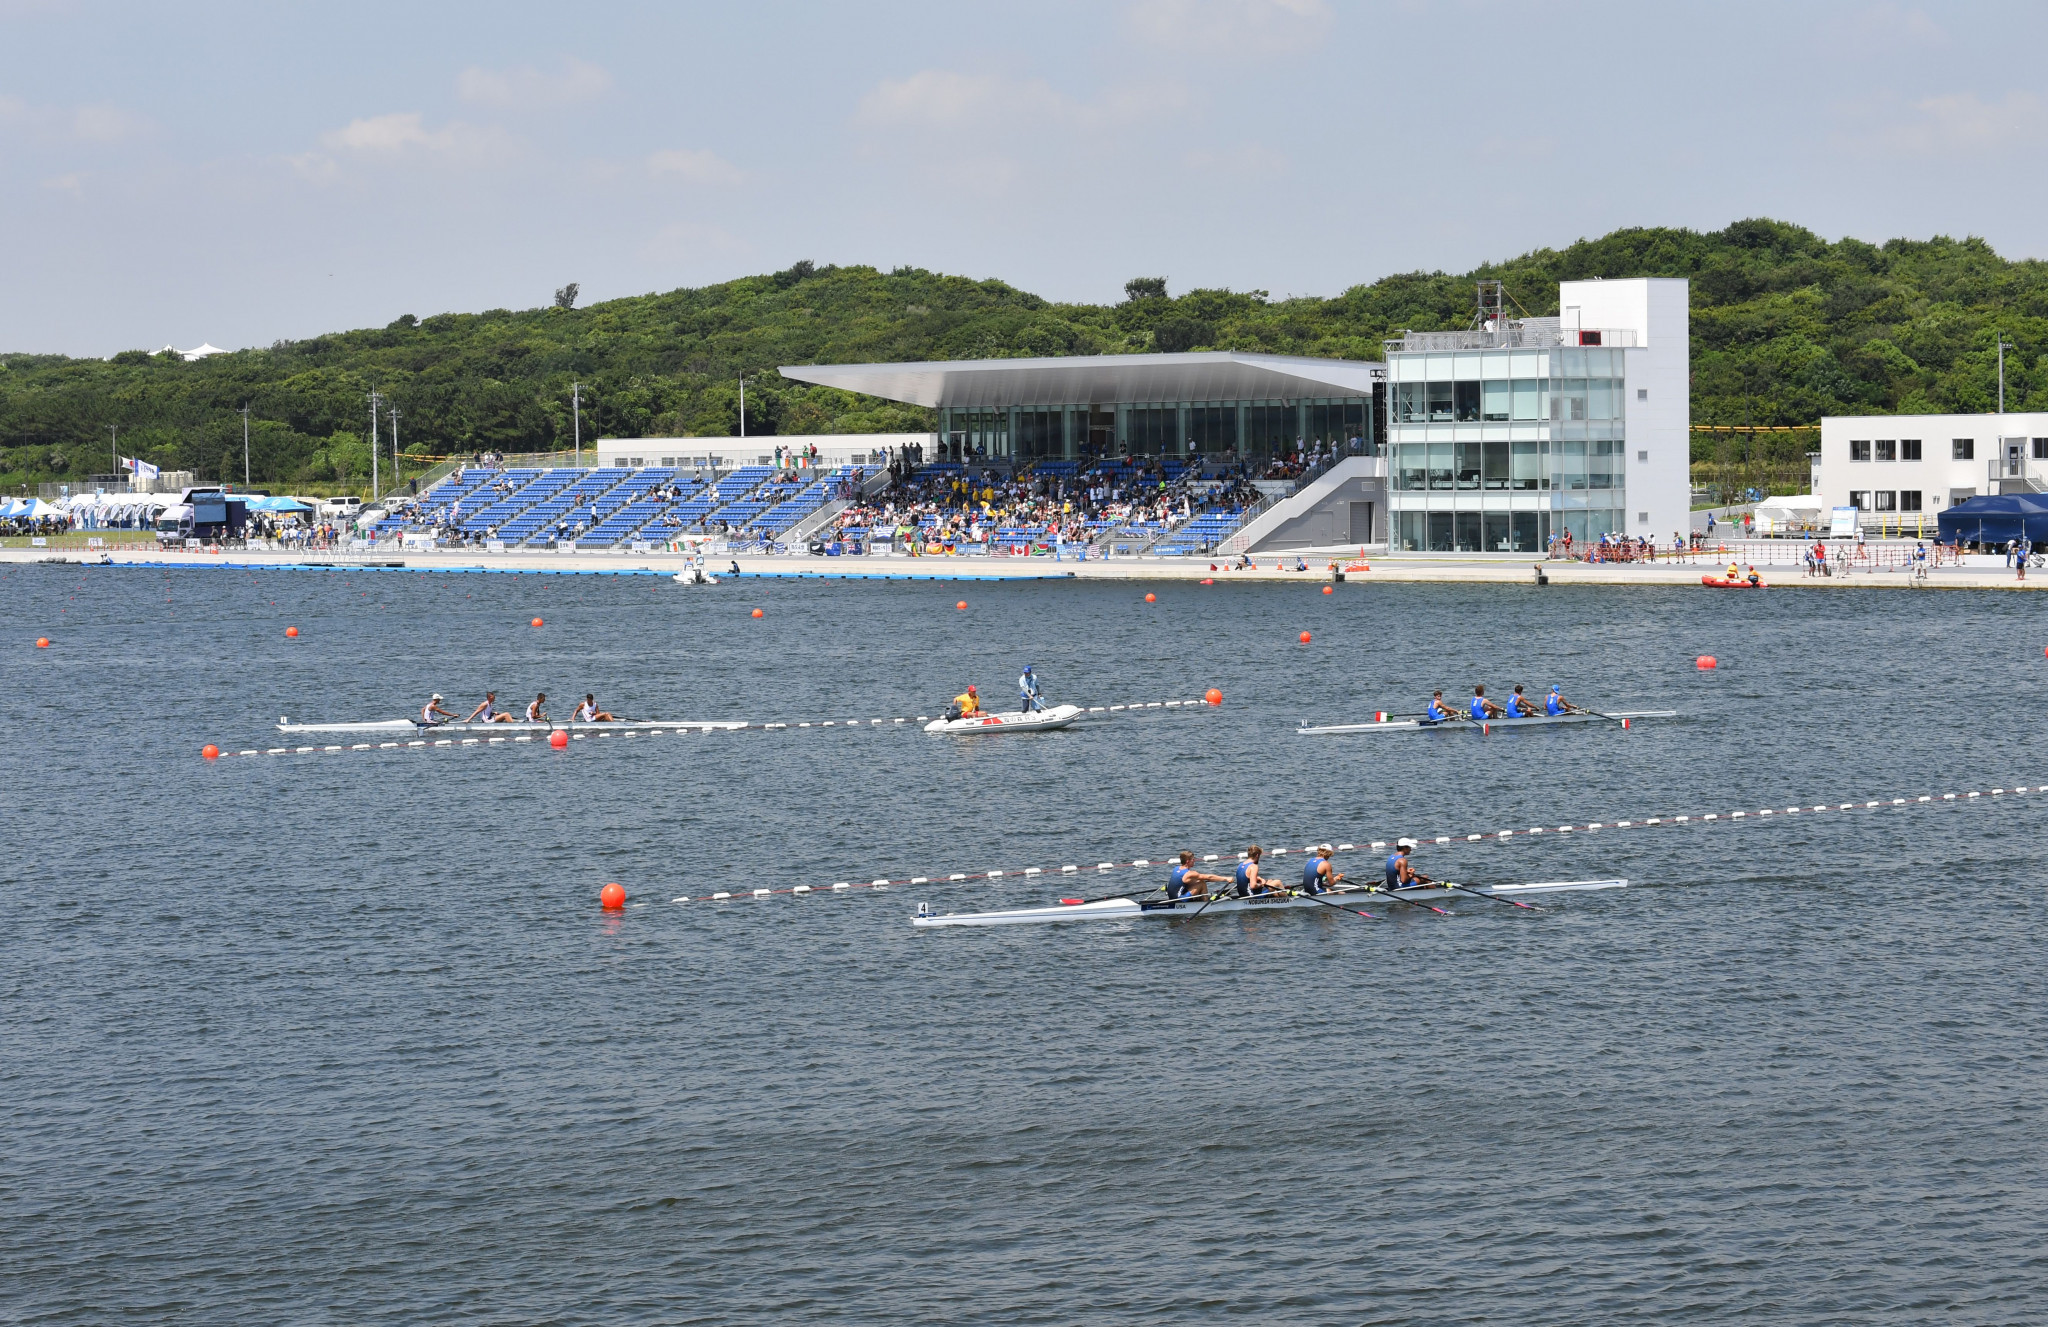 World's best time set at World Rowing Junior Championships and Olympic test event in Tokyo